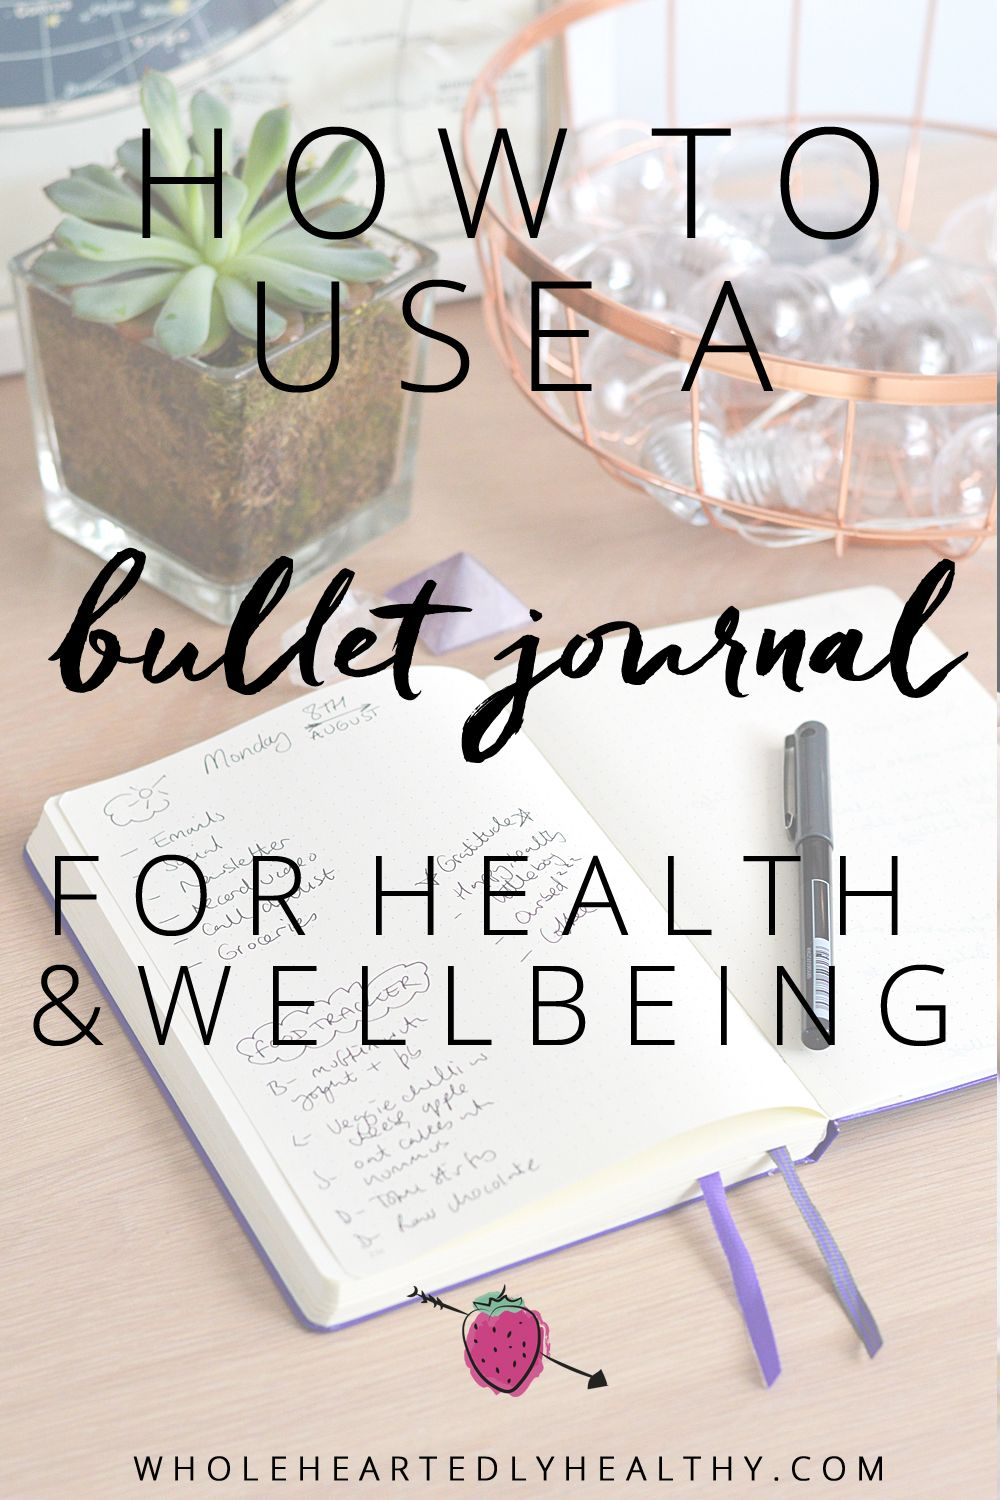 How to use a bullet journal for health and wellbeing - Wholeheartedly Laura #health